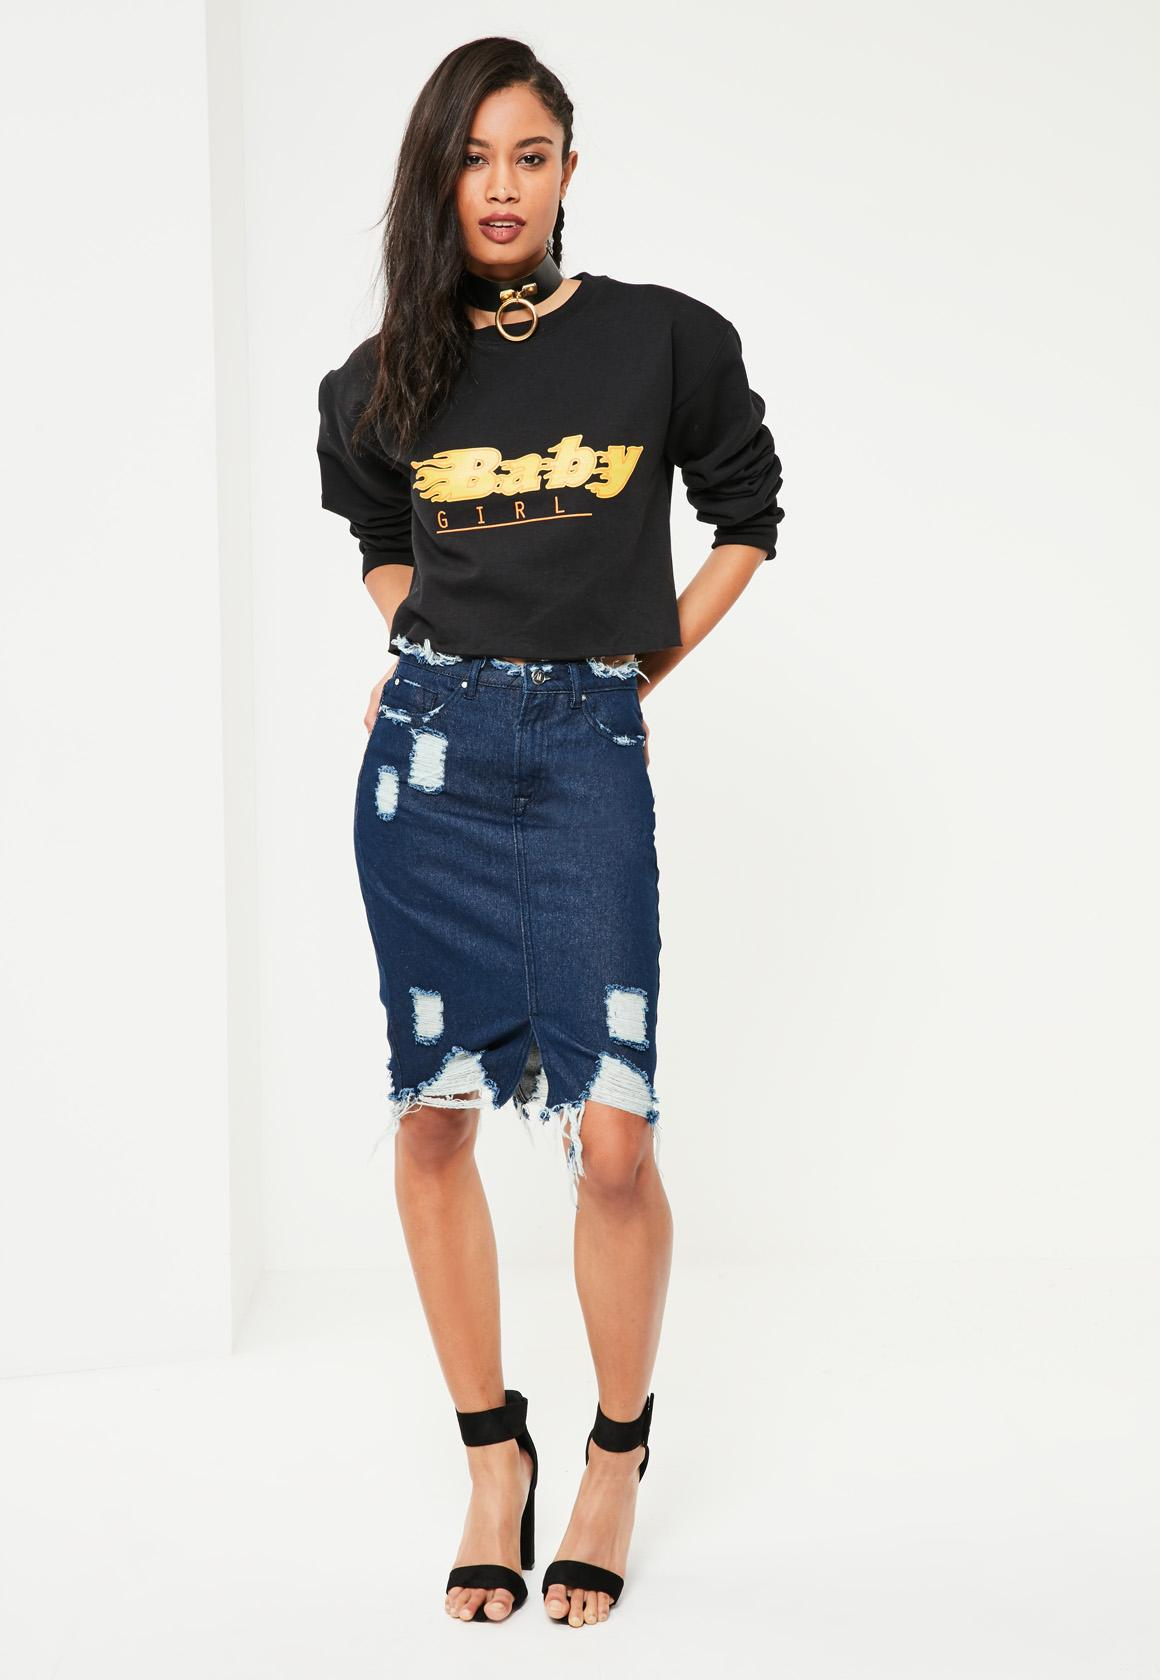 Blue Denim Skirts | Women's Blue Denim Skirts Online - Missguided